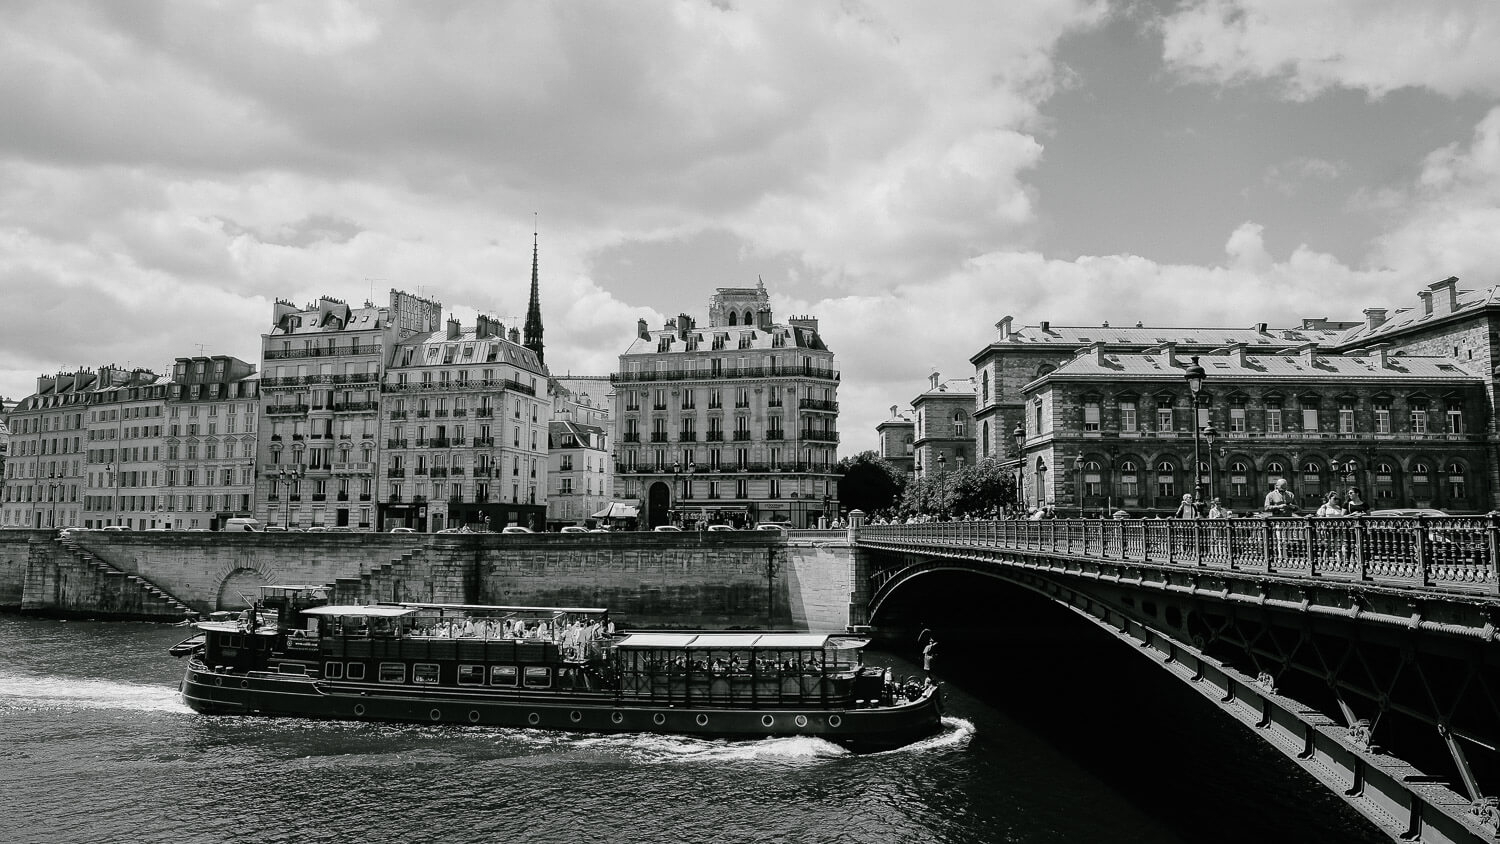 "A boat in the Seine River, Paris. Travel photography and guide by © Natasha Lequepeys for ""And Then I Met Yoko"". #paristravel #photoblog #travelguide #france #parisitinerary"